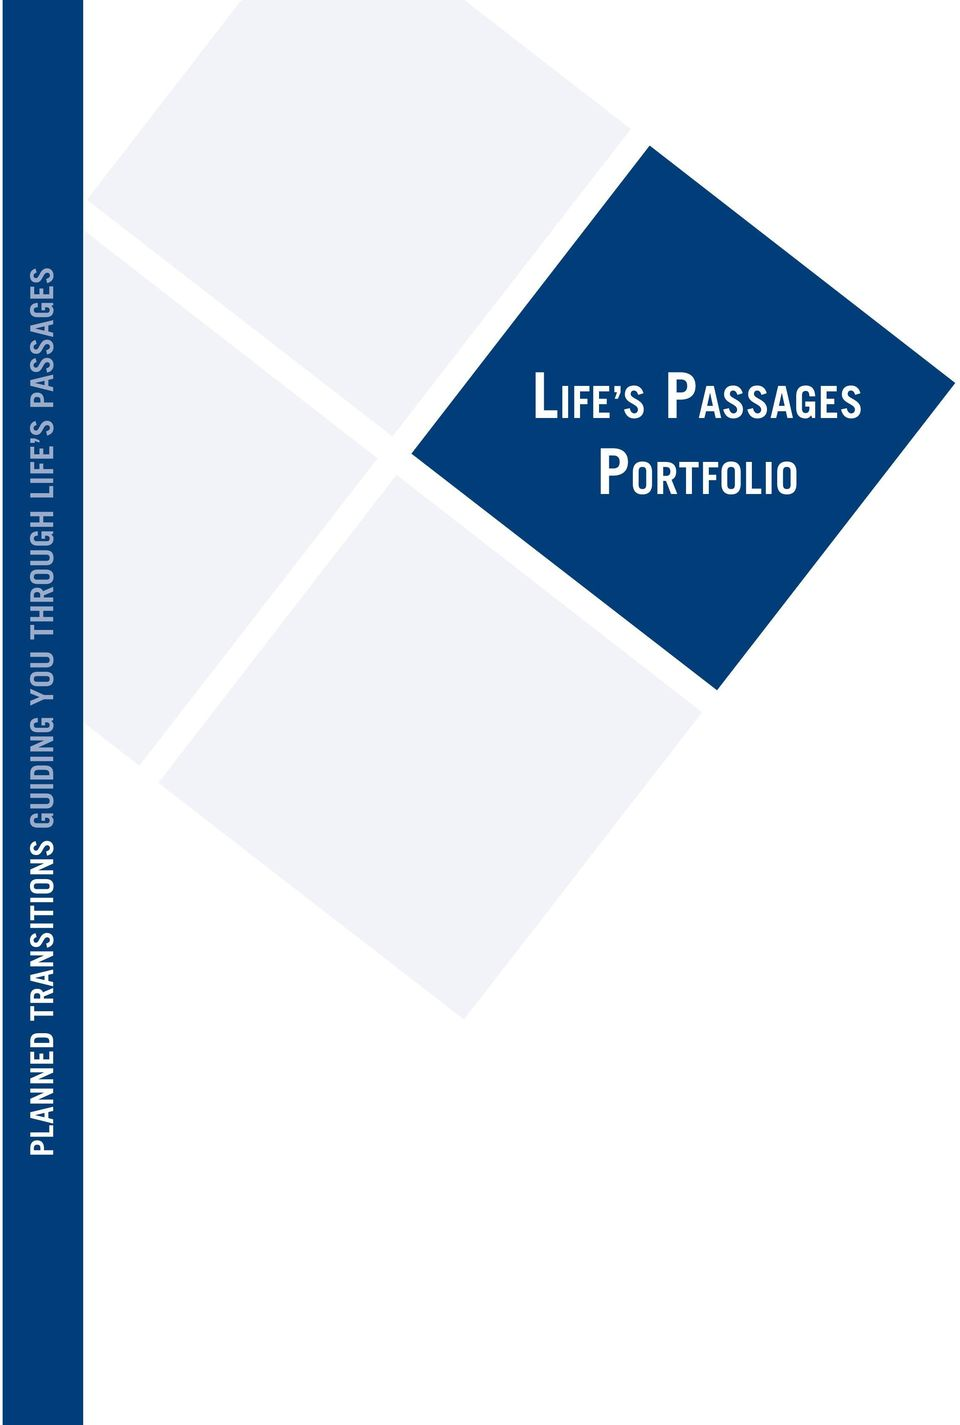 LIFE S PASSAGES LIFE